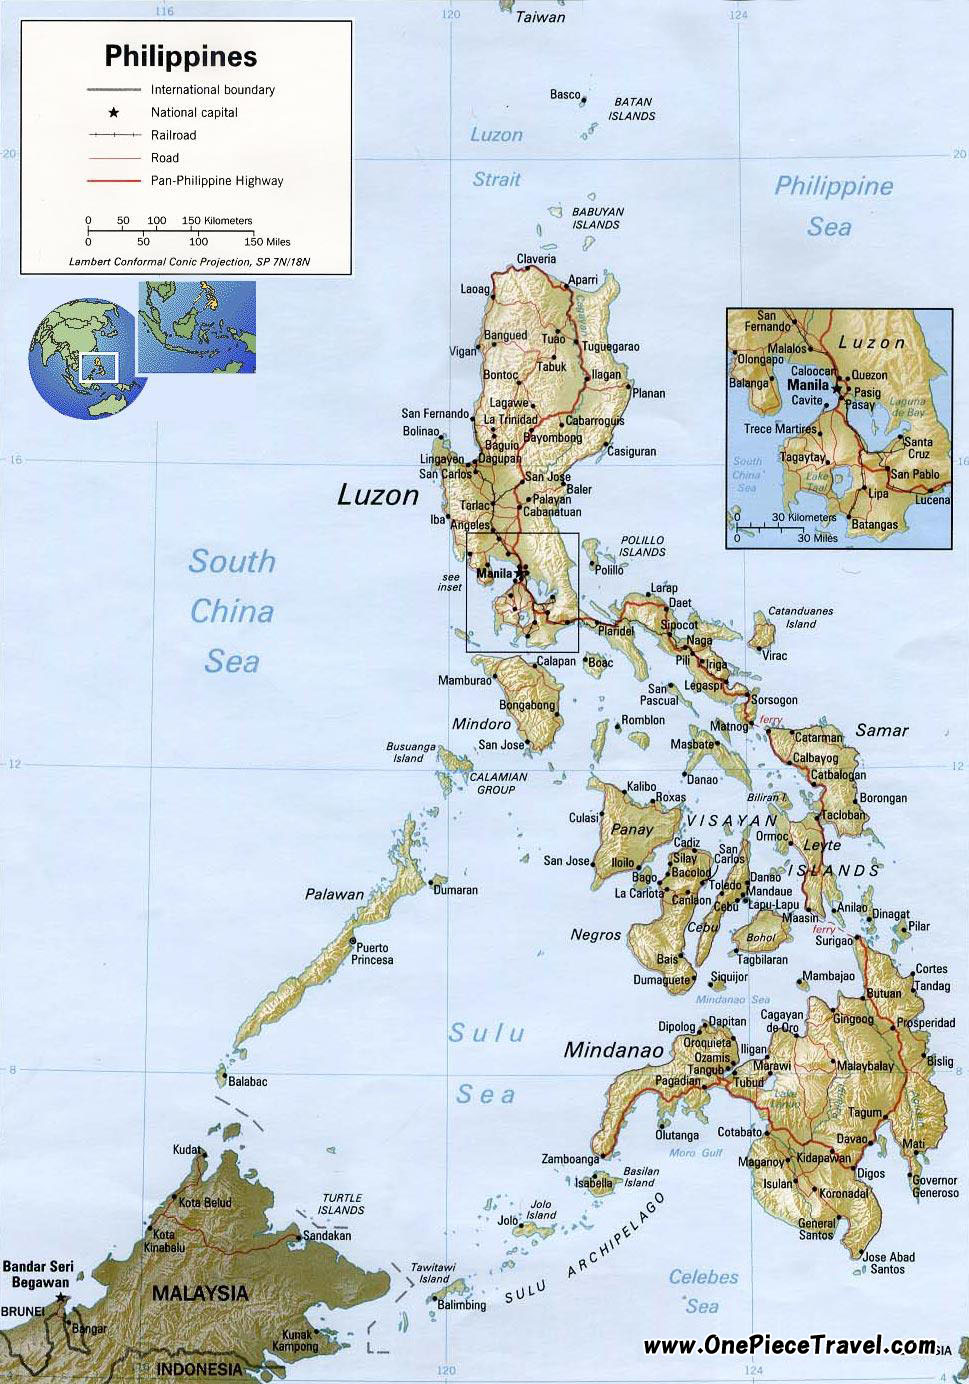 Philippines Tourist Attractions and Travel – Philippines Tourist Attractions Map